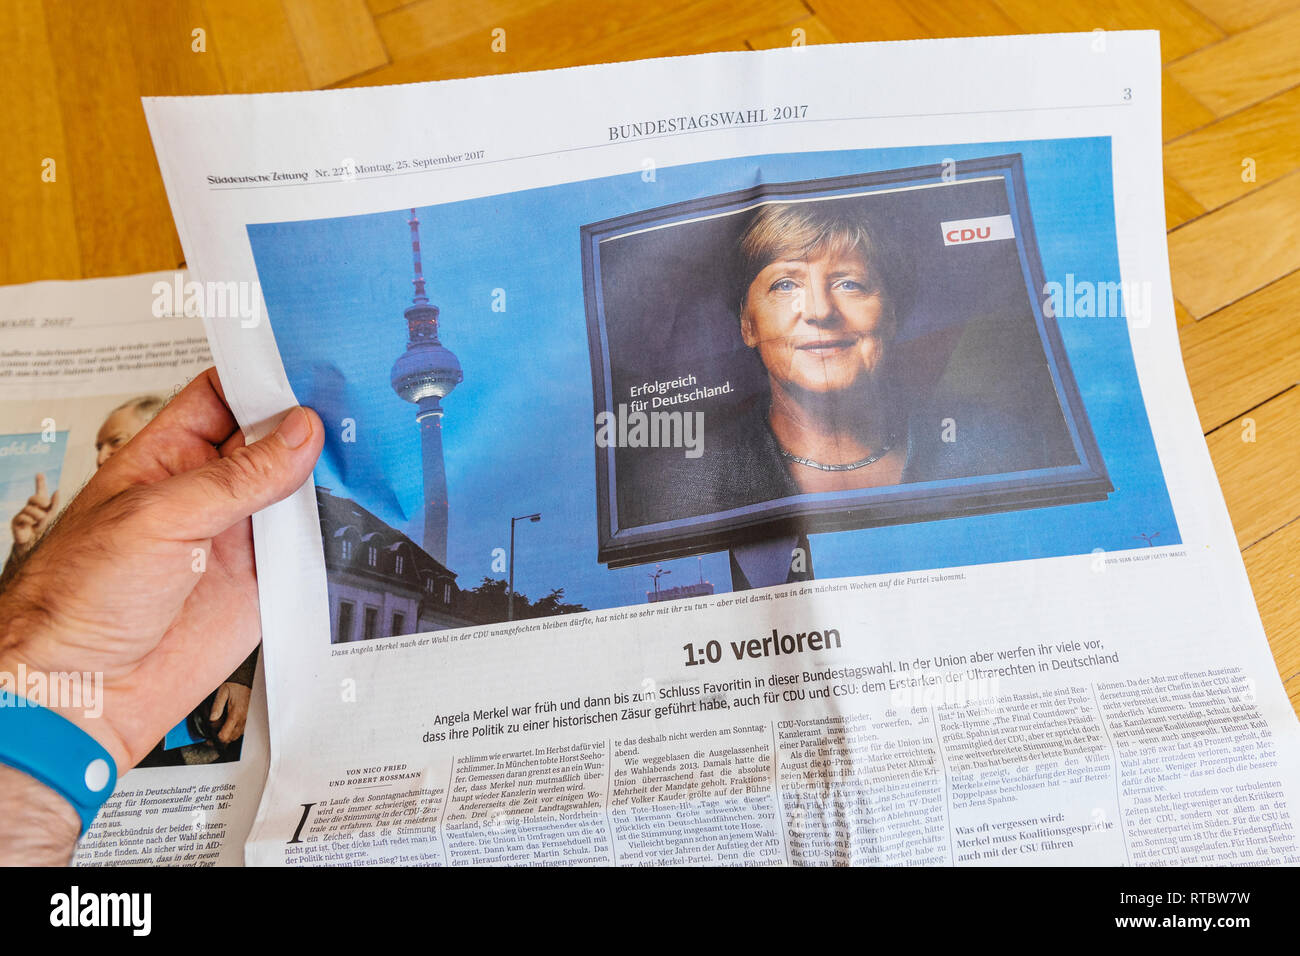 PARIS, FRANCE - SEP 25, 2017: suddeutsche zeitung newspaper with portrait of Angela Merkel after election in Germany for the Chancellor of Germany, the head of the federal government - Stock Image